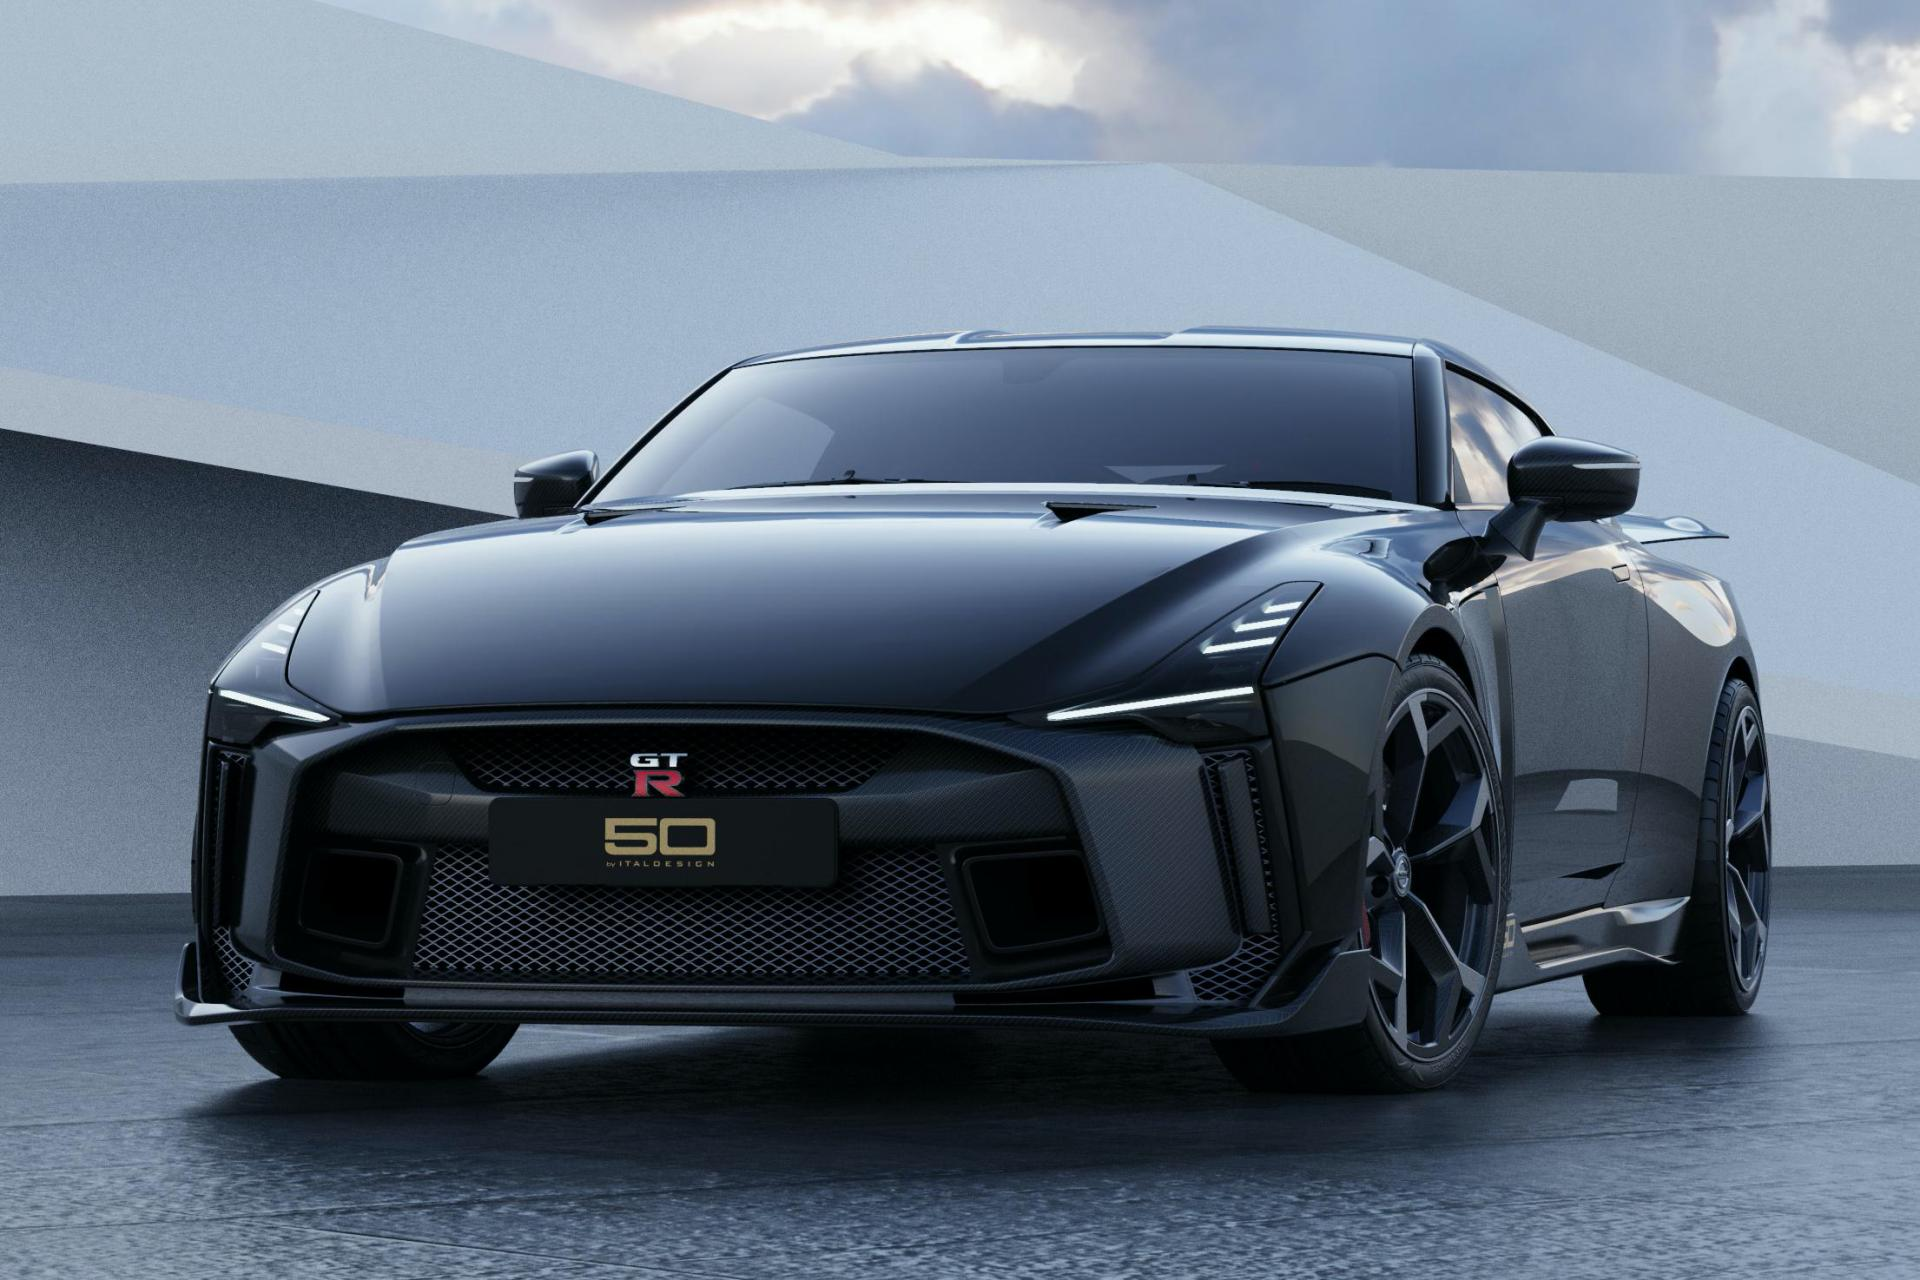 Nissan-GT-R50-by-Italdesign-production-rendering-1